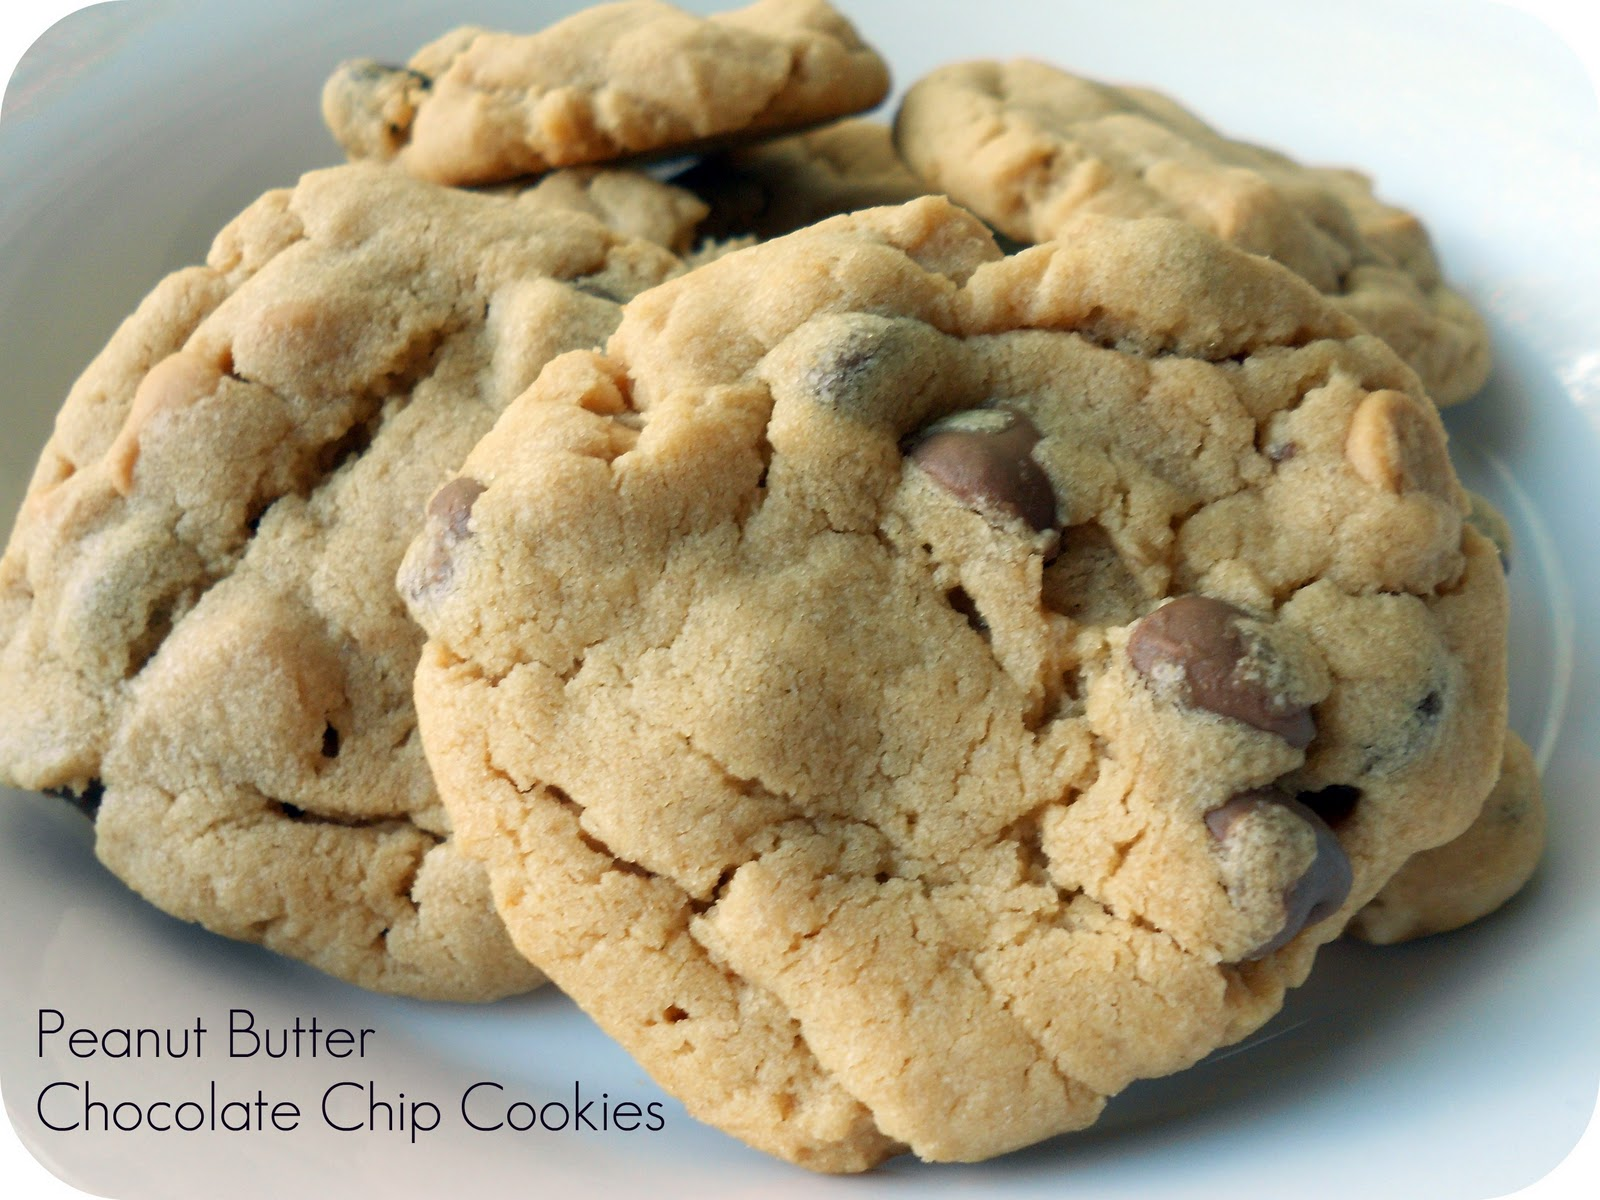 Classic Peanut Butter Chocolate Chip Cookies Recipe/Six ...